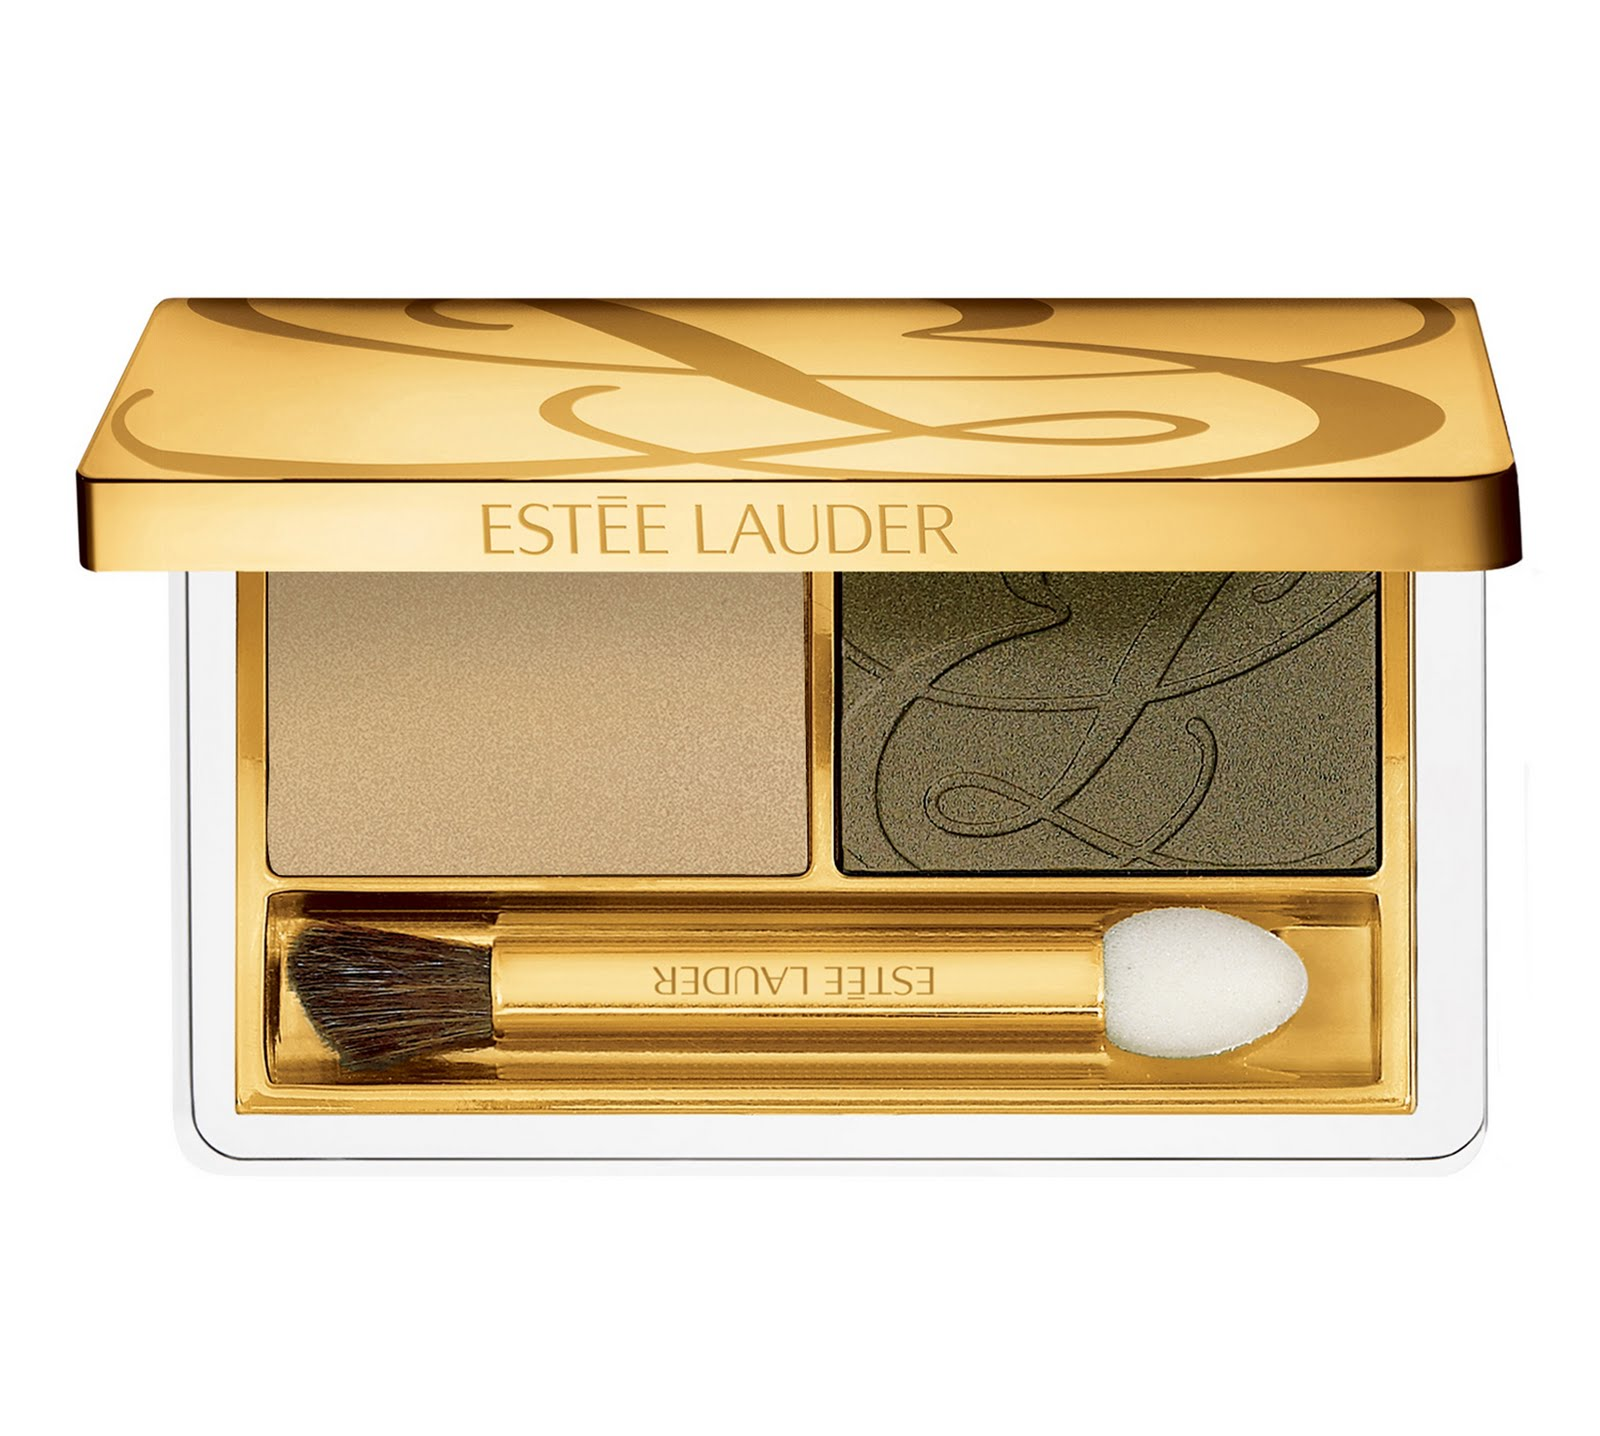 Estee Lauder Khakis Eye Shadow Duo